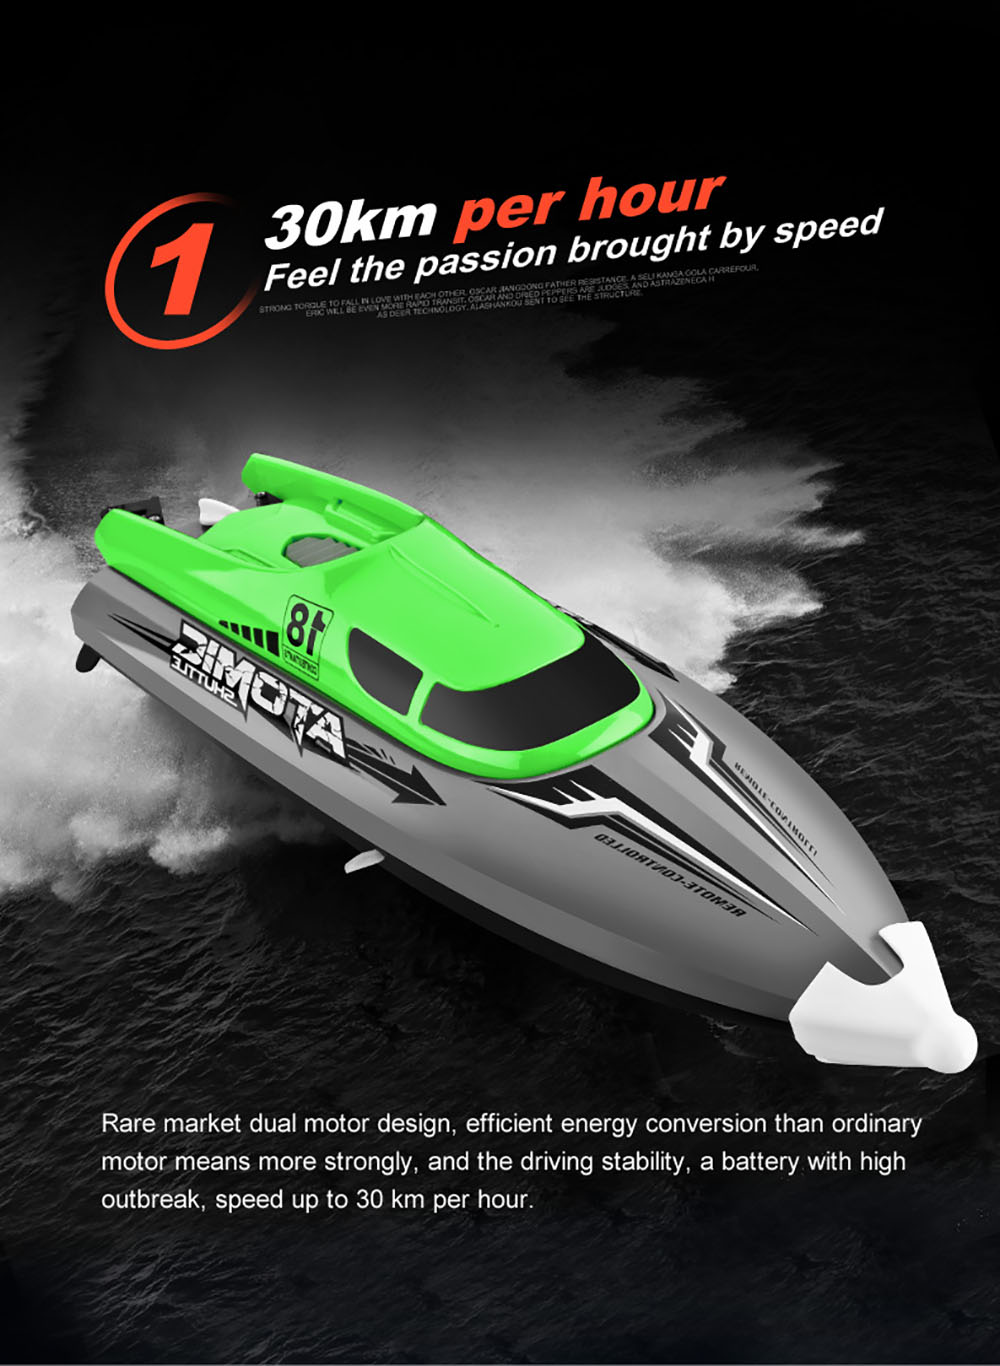 601 2.4G High-speed Remote Control Boat Capsize Reset Pull Water-cooled Cooling Water Games Boats Fishing Toys - Green One Battery